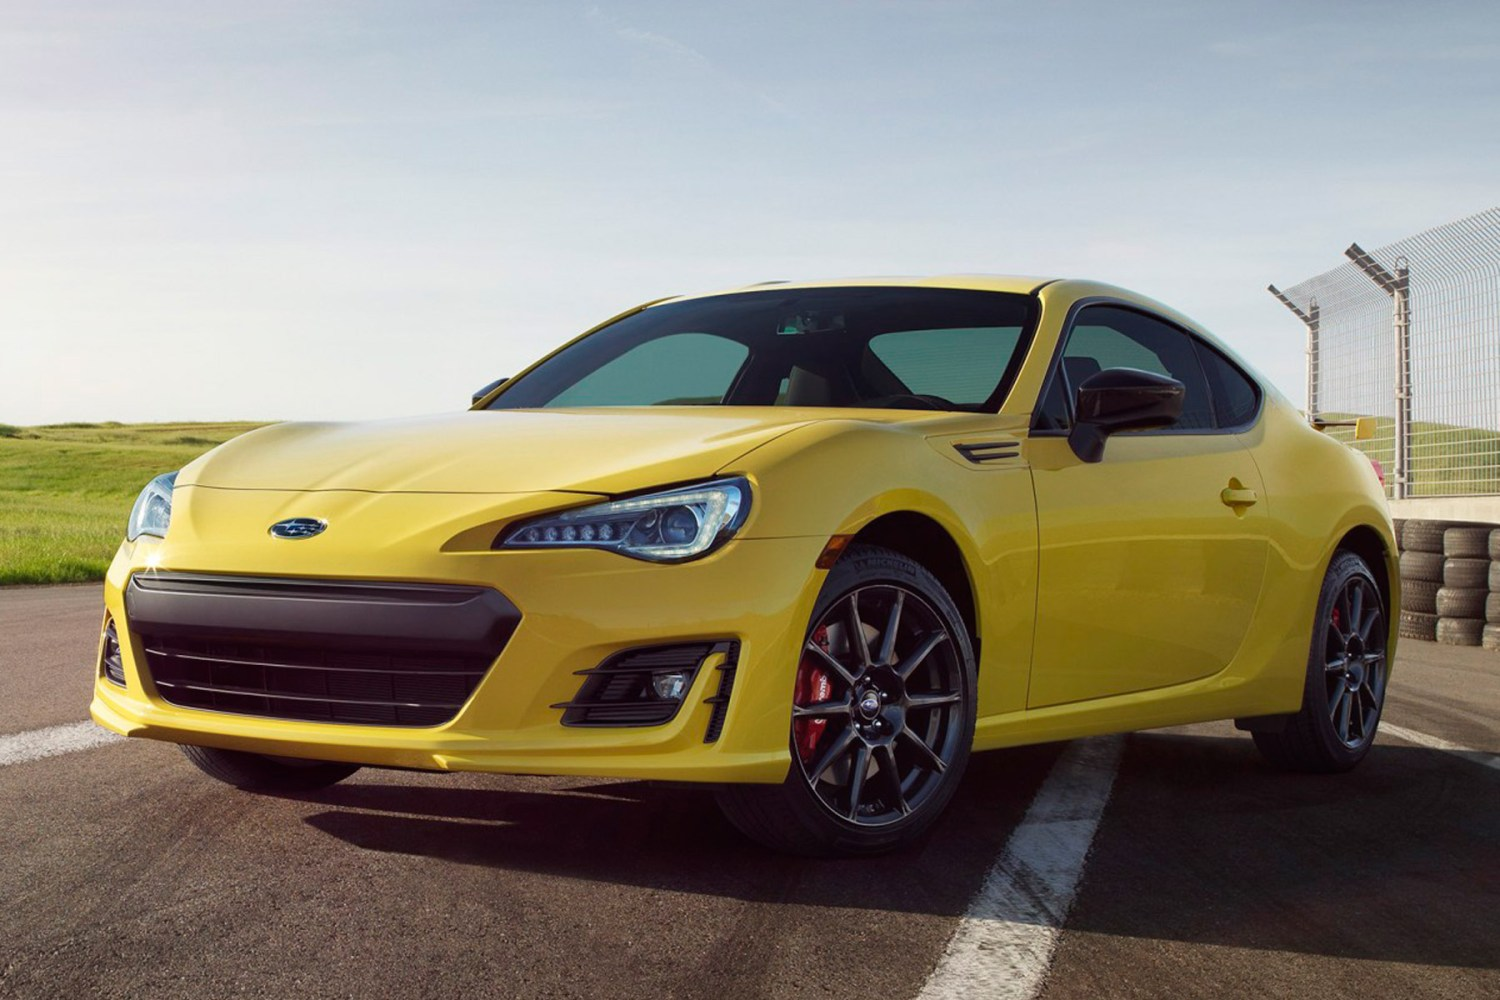 Subaru announces awesome yellow limited edition BRZ